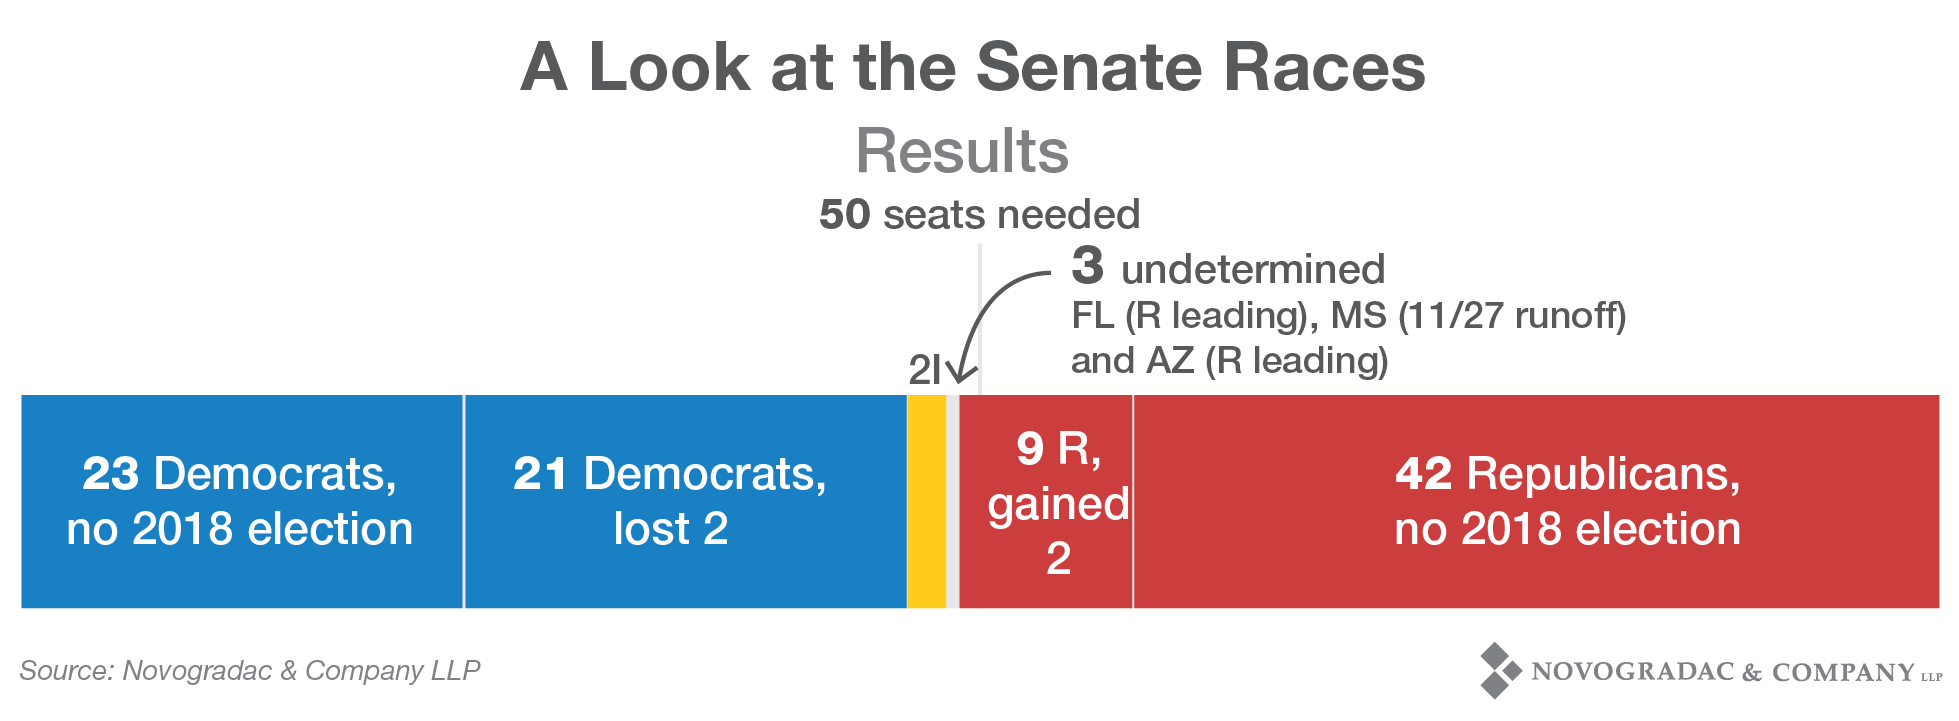 Blog Image 2018 Election A Look at the Senate Races